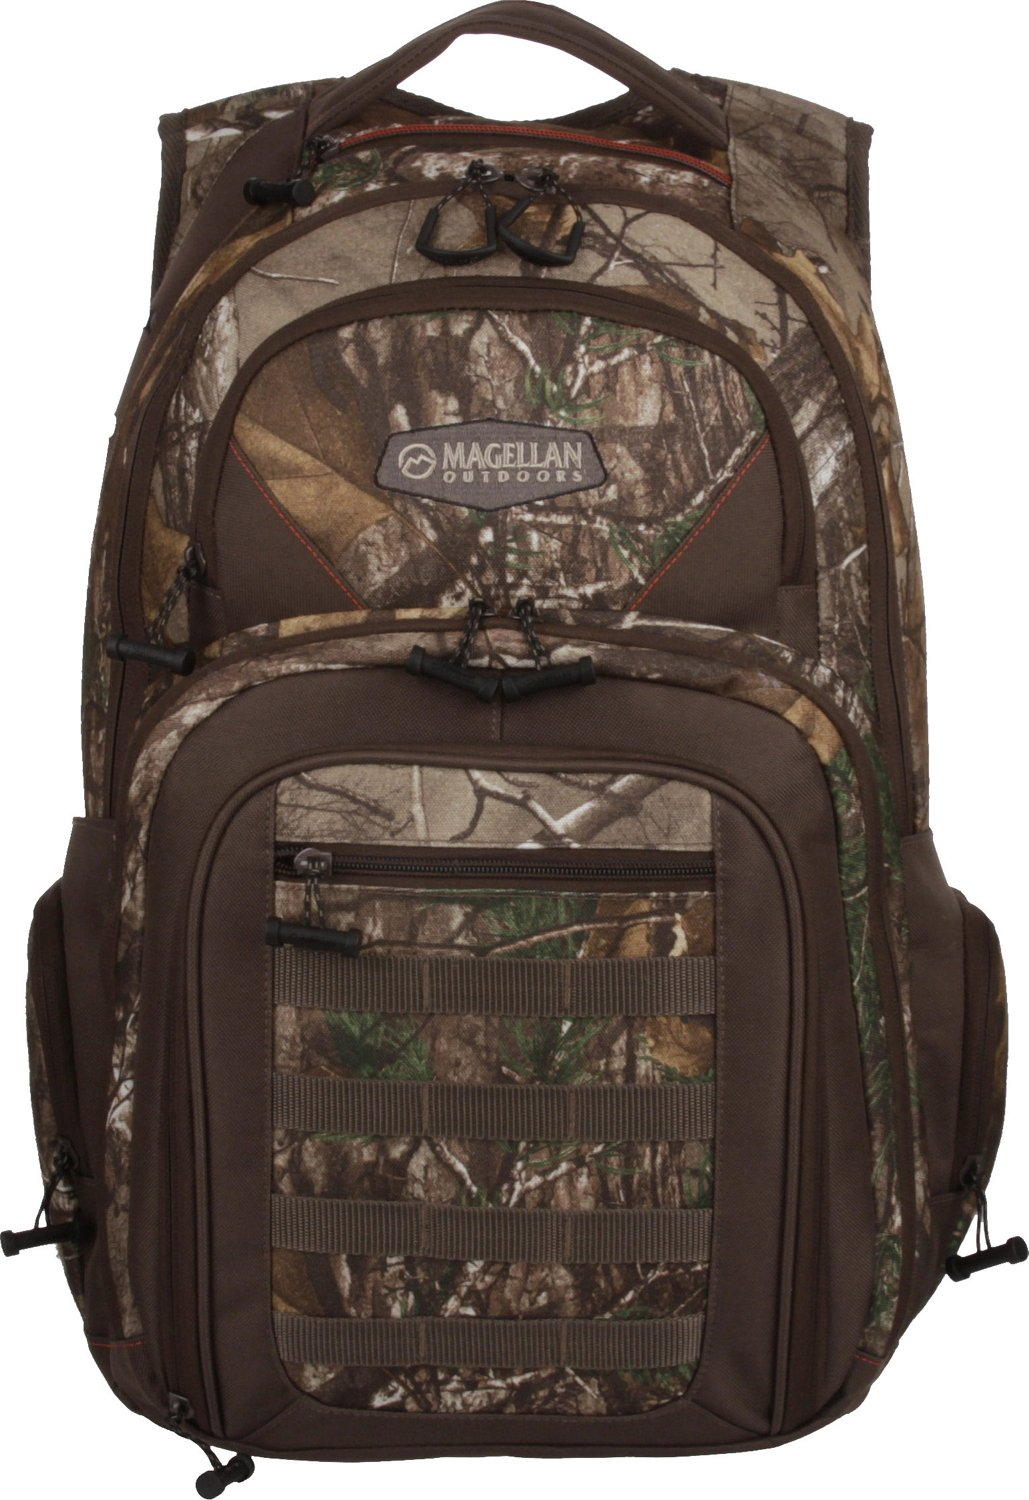 8d6fe5096f Display product reviews for Magellan Outdoors Men s Hunting Pack